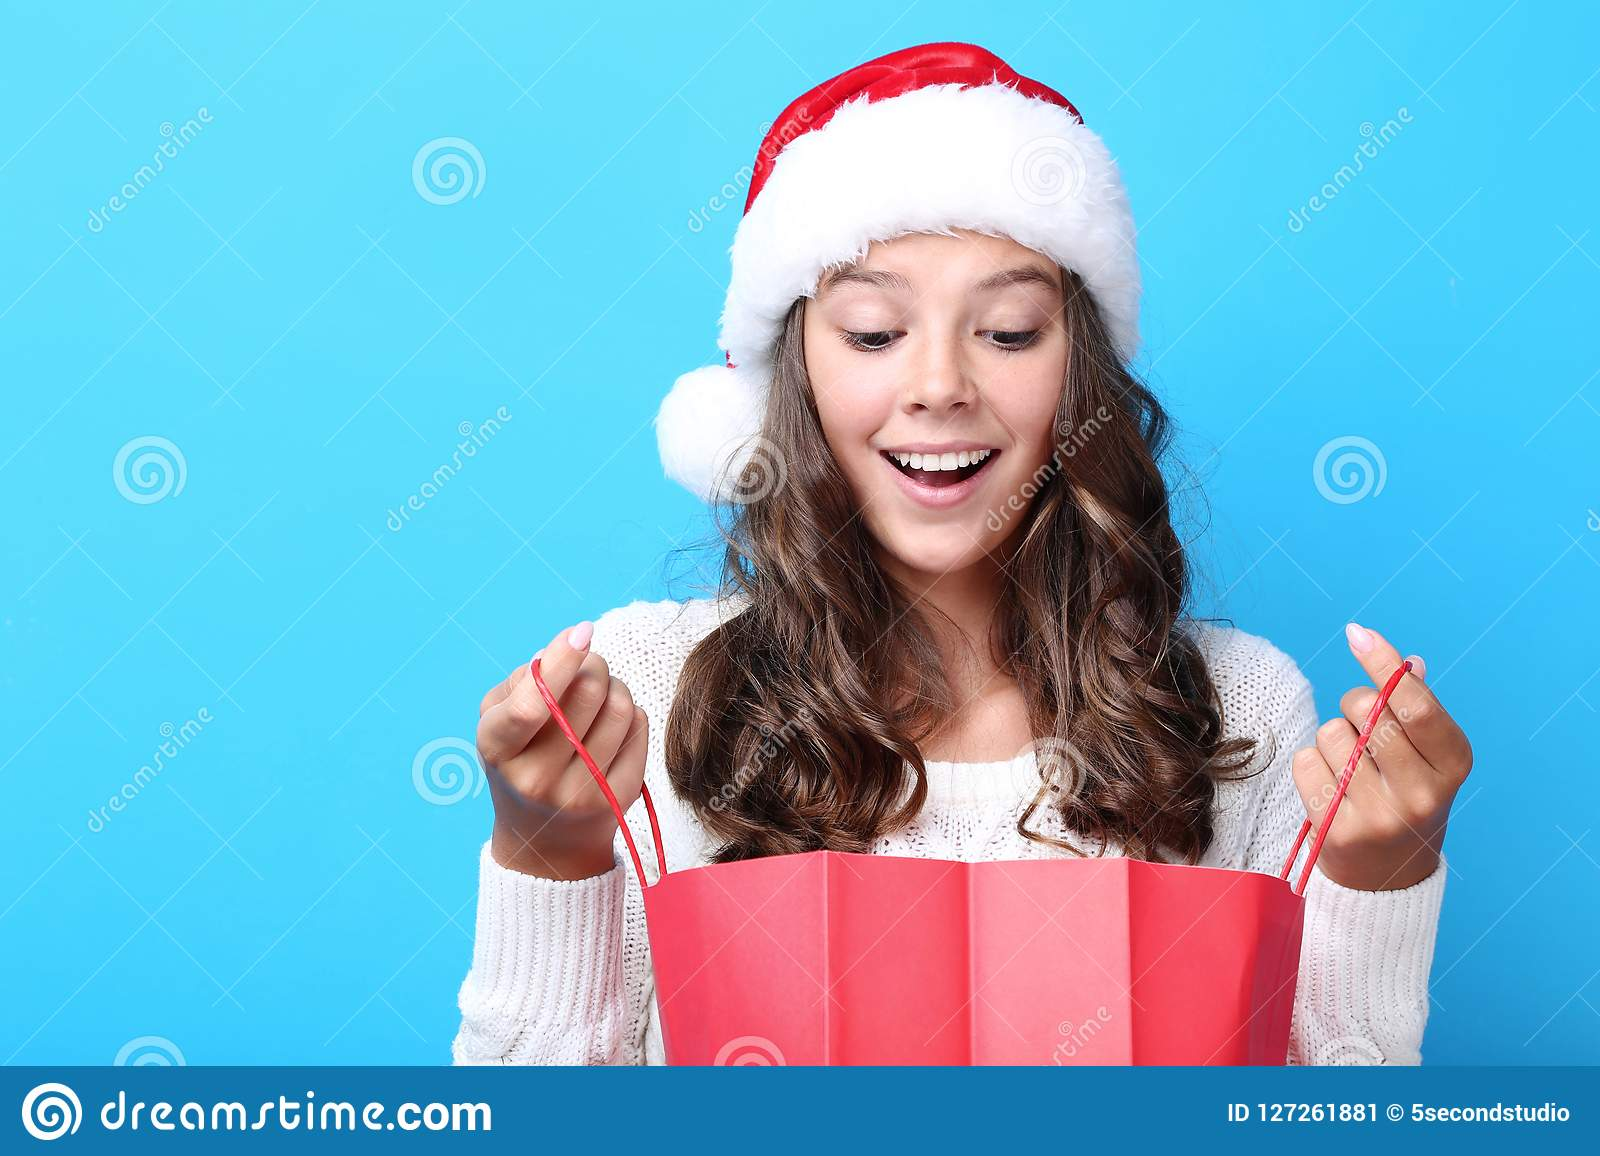 a9b38420430b7 Girl In Santa Hat Holding Shopping Bag Stock Image - Image of color ...